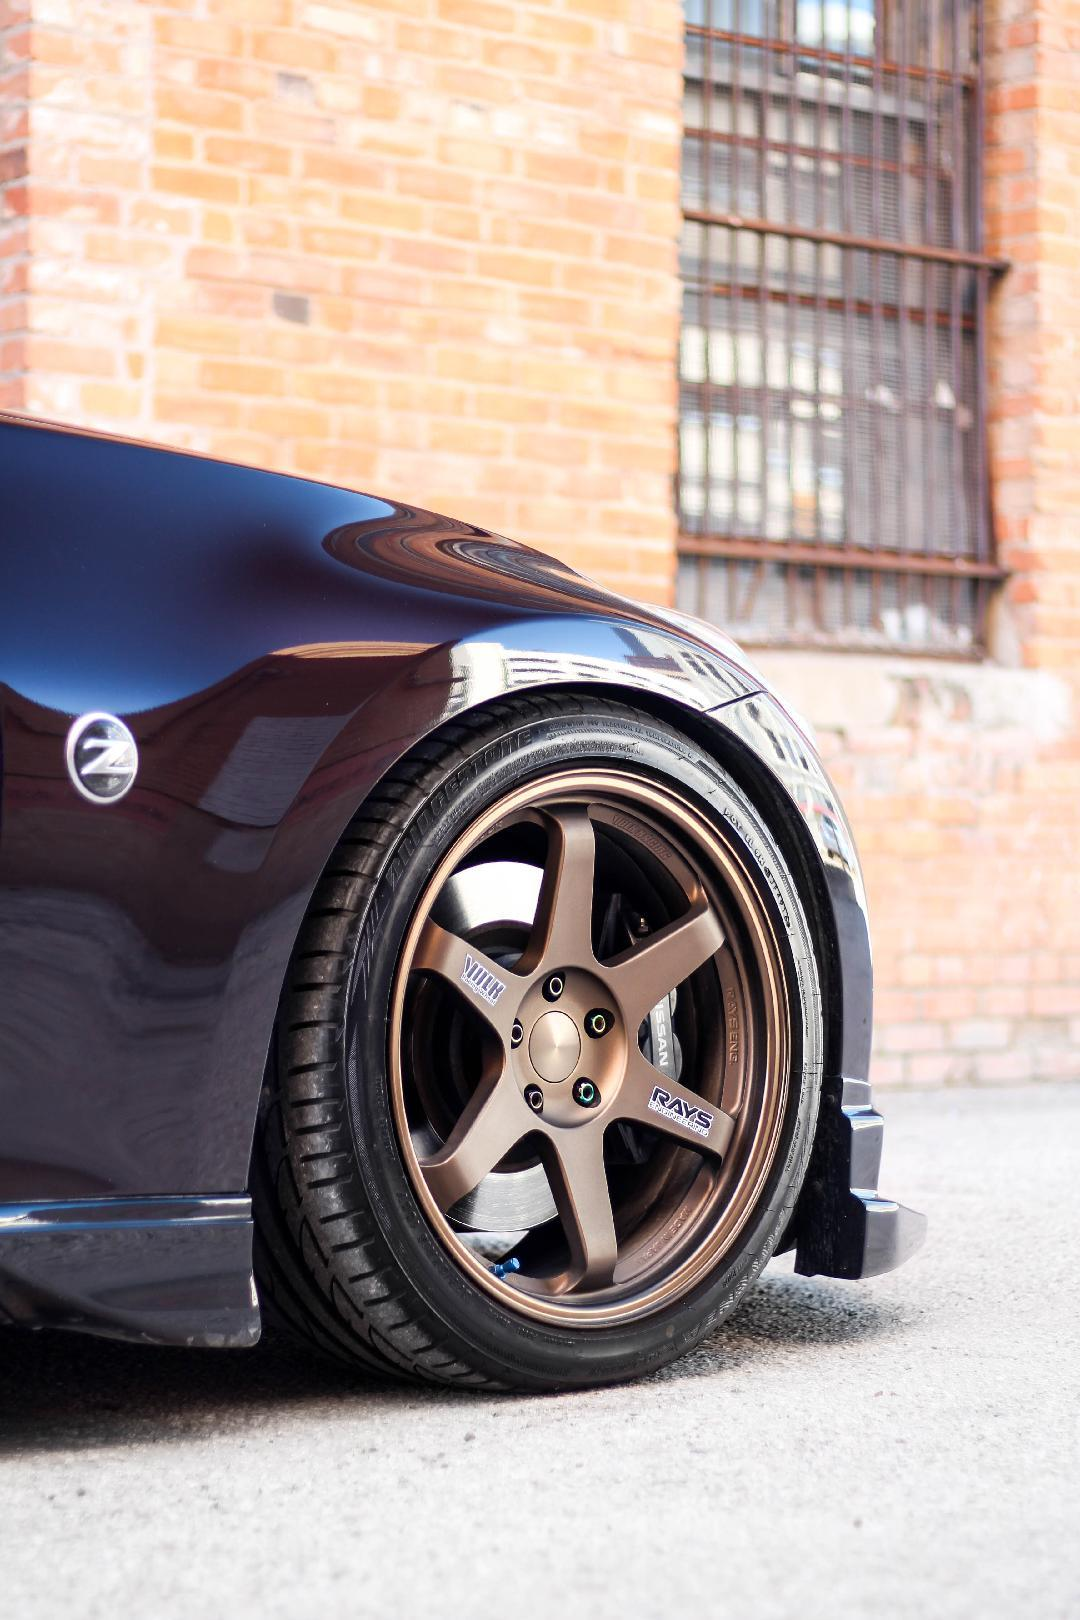 2010 Nissan 370Z on Volk Racing TE37